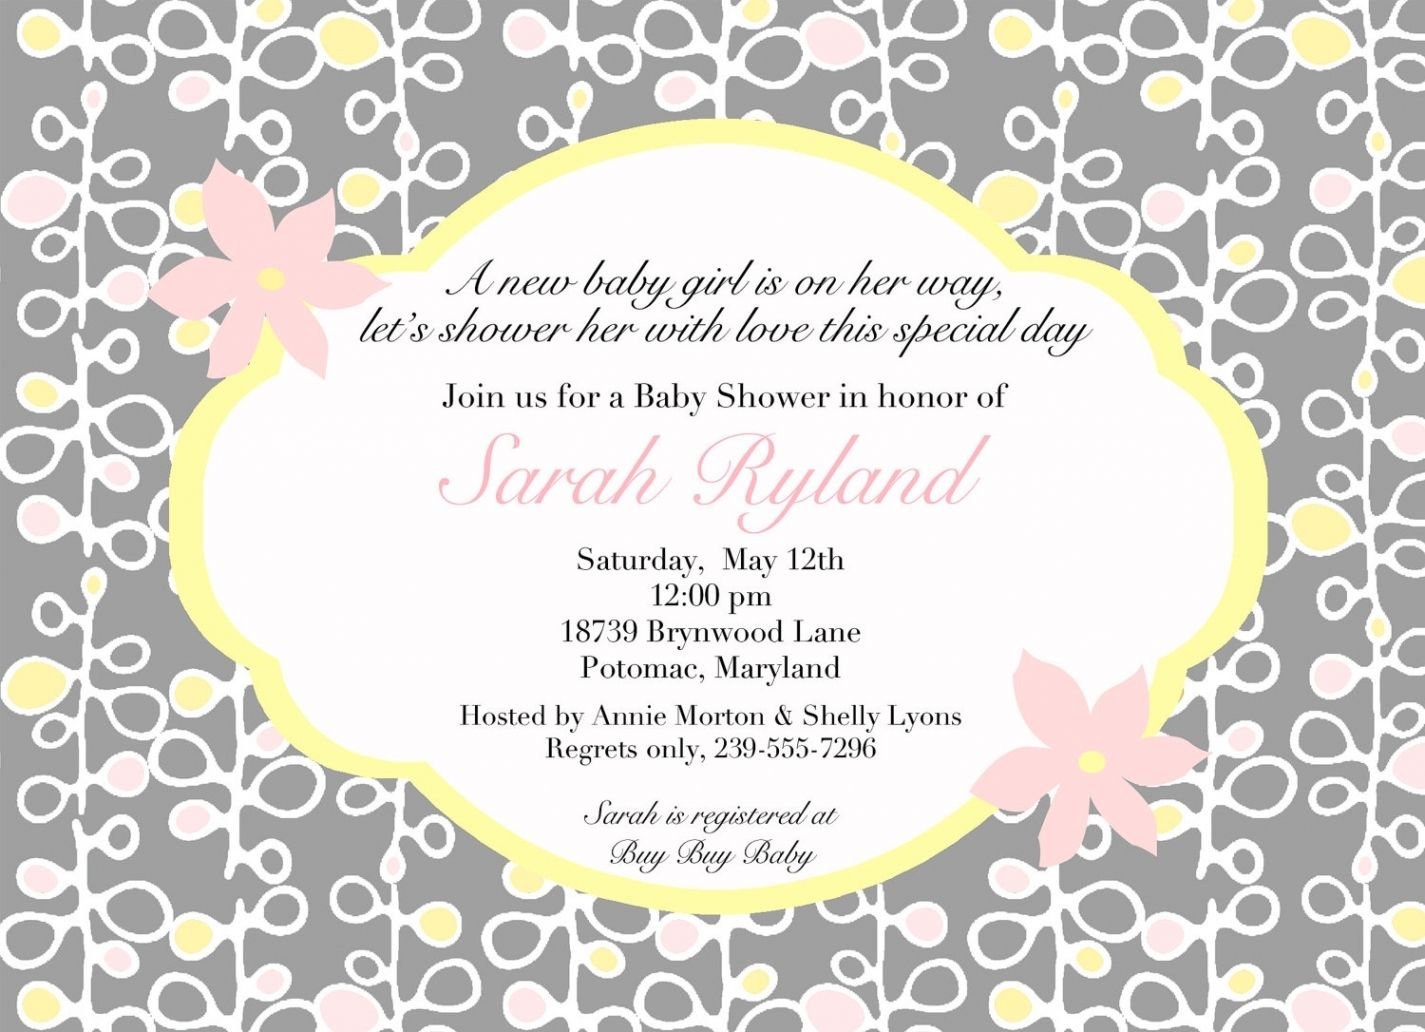 Best Email Baby Shower Invitations httpatwebryinfo